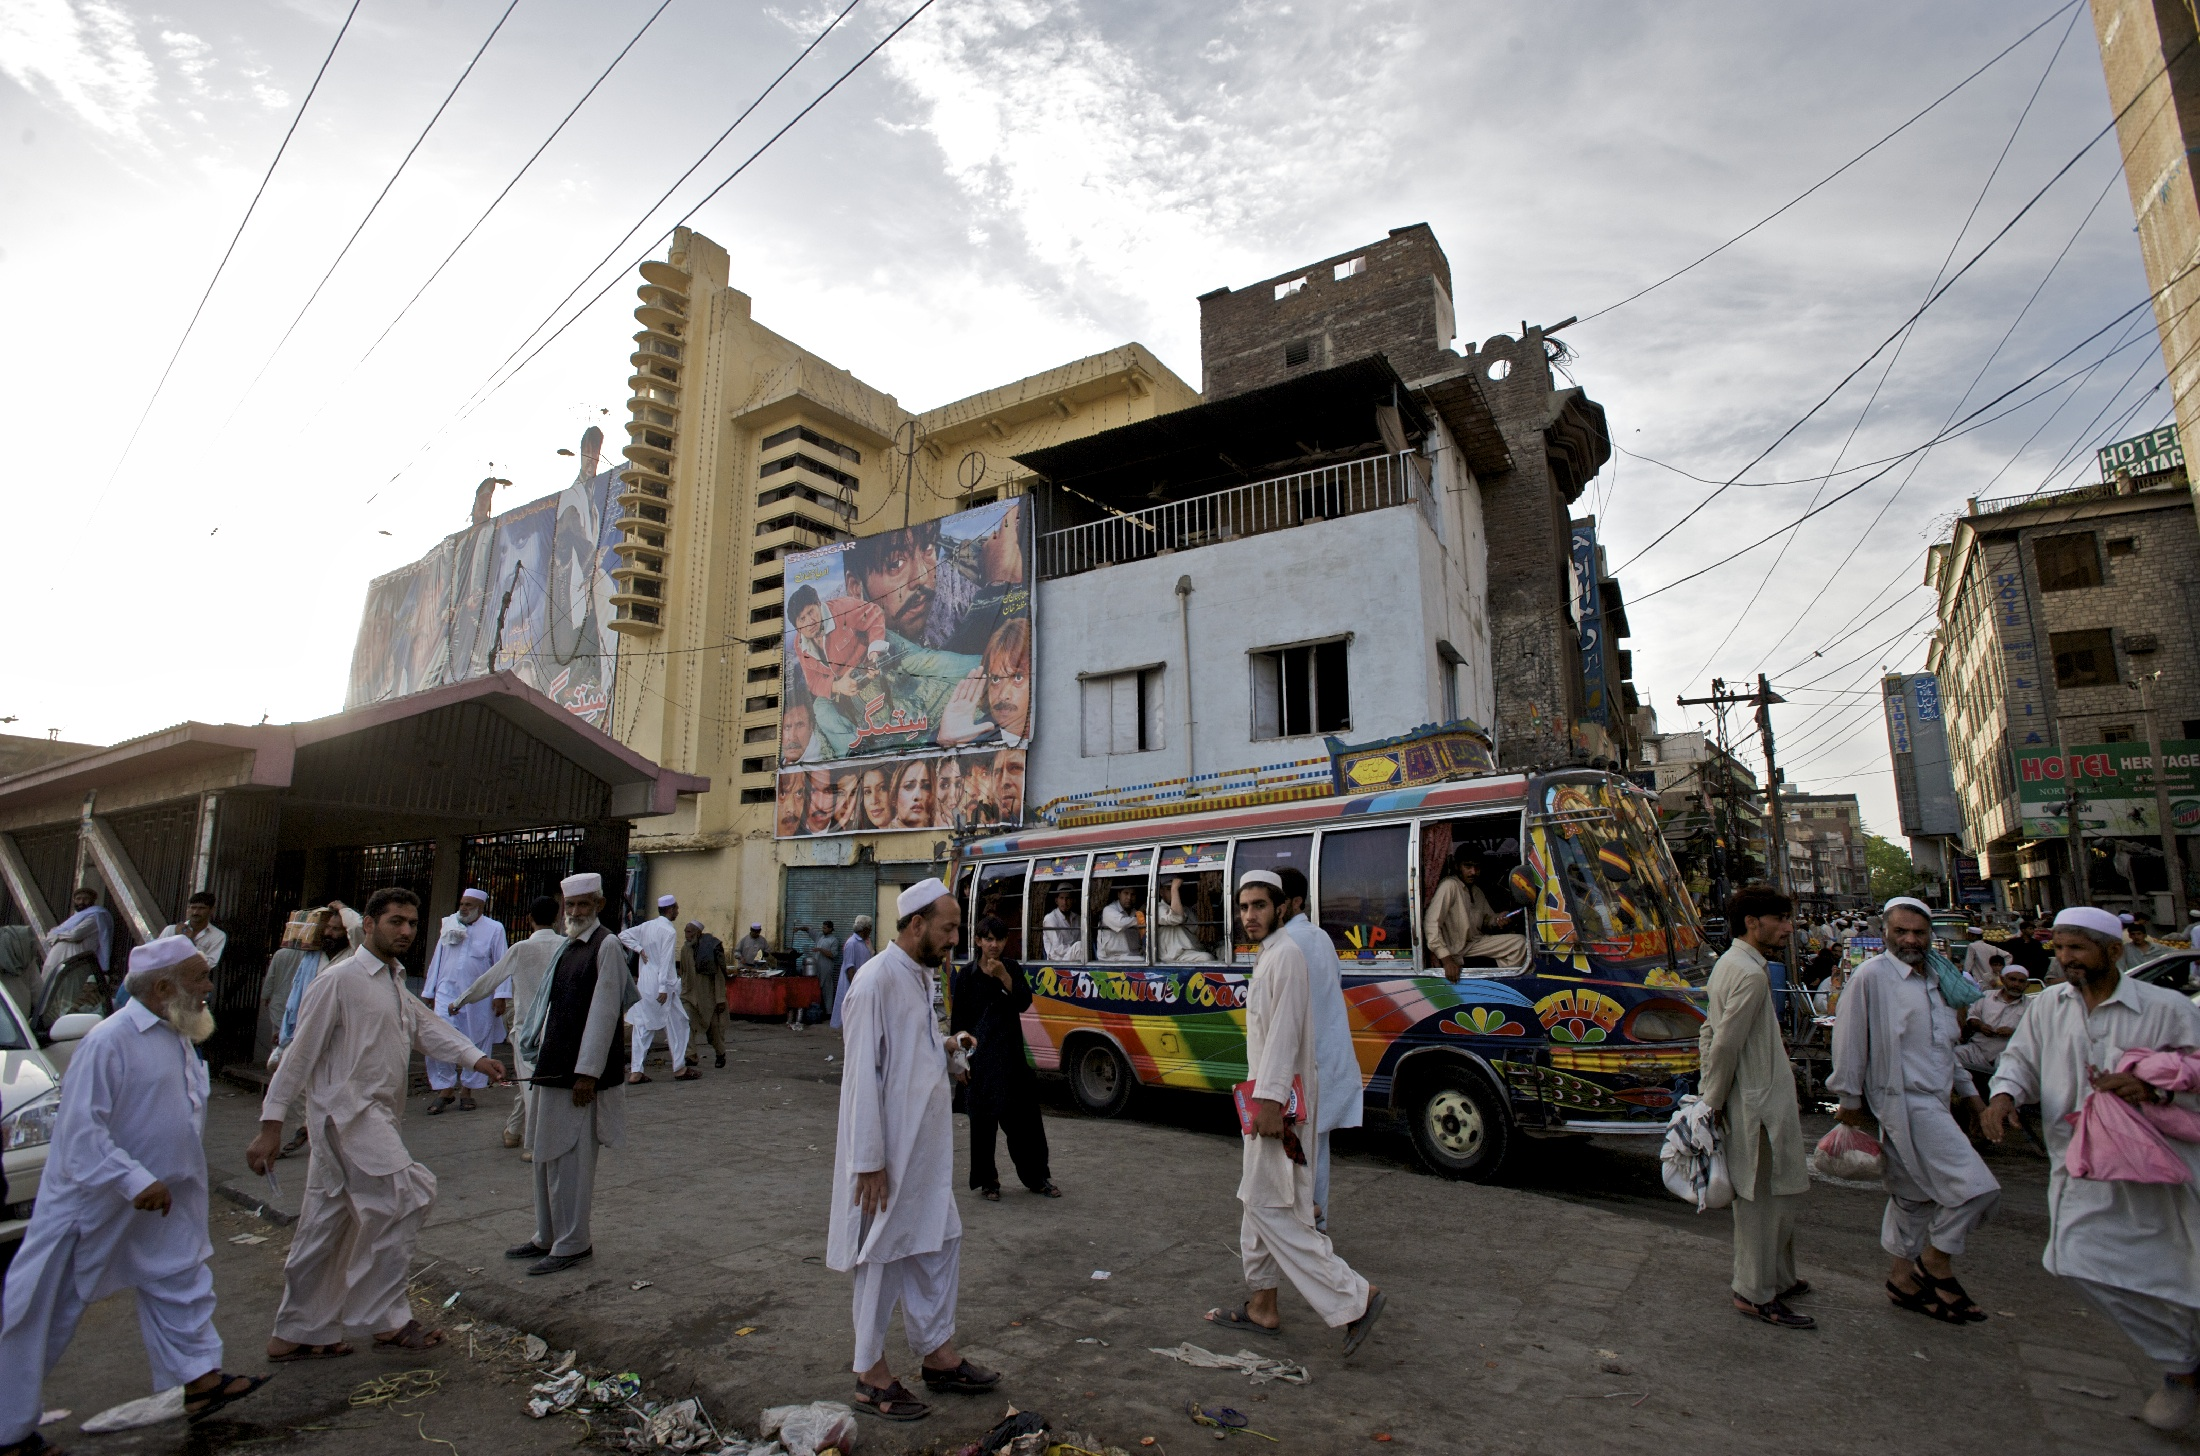 Peshawar's one remaining movie theater.